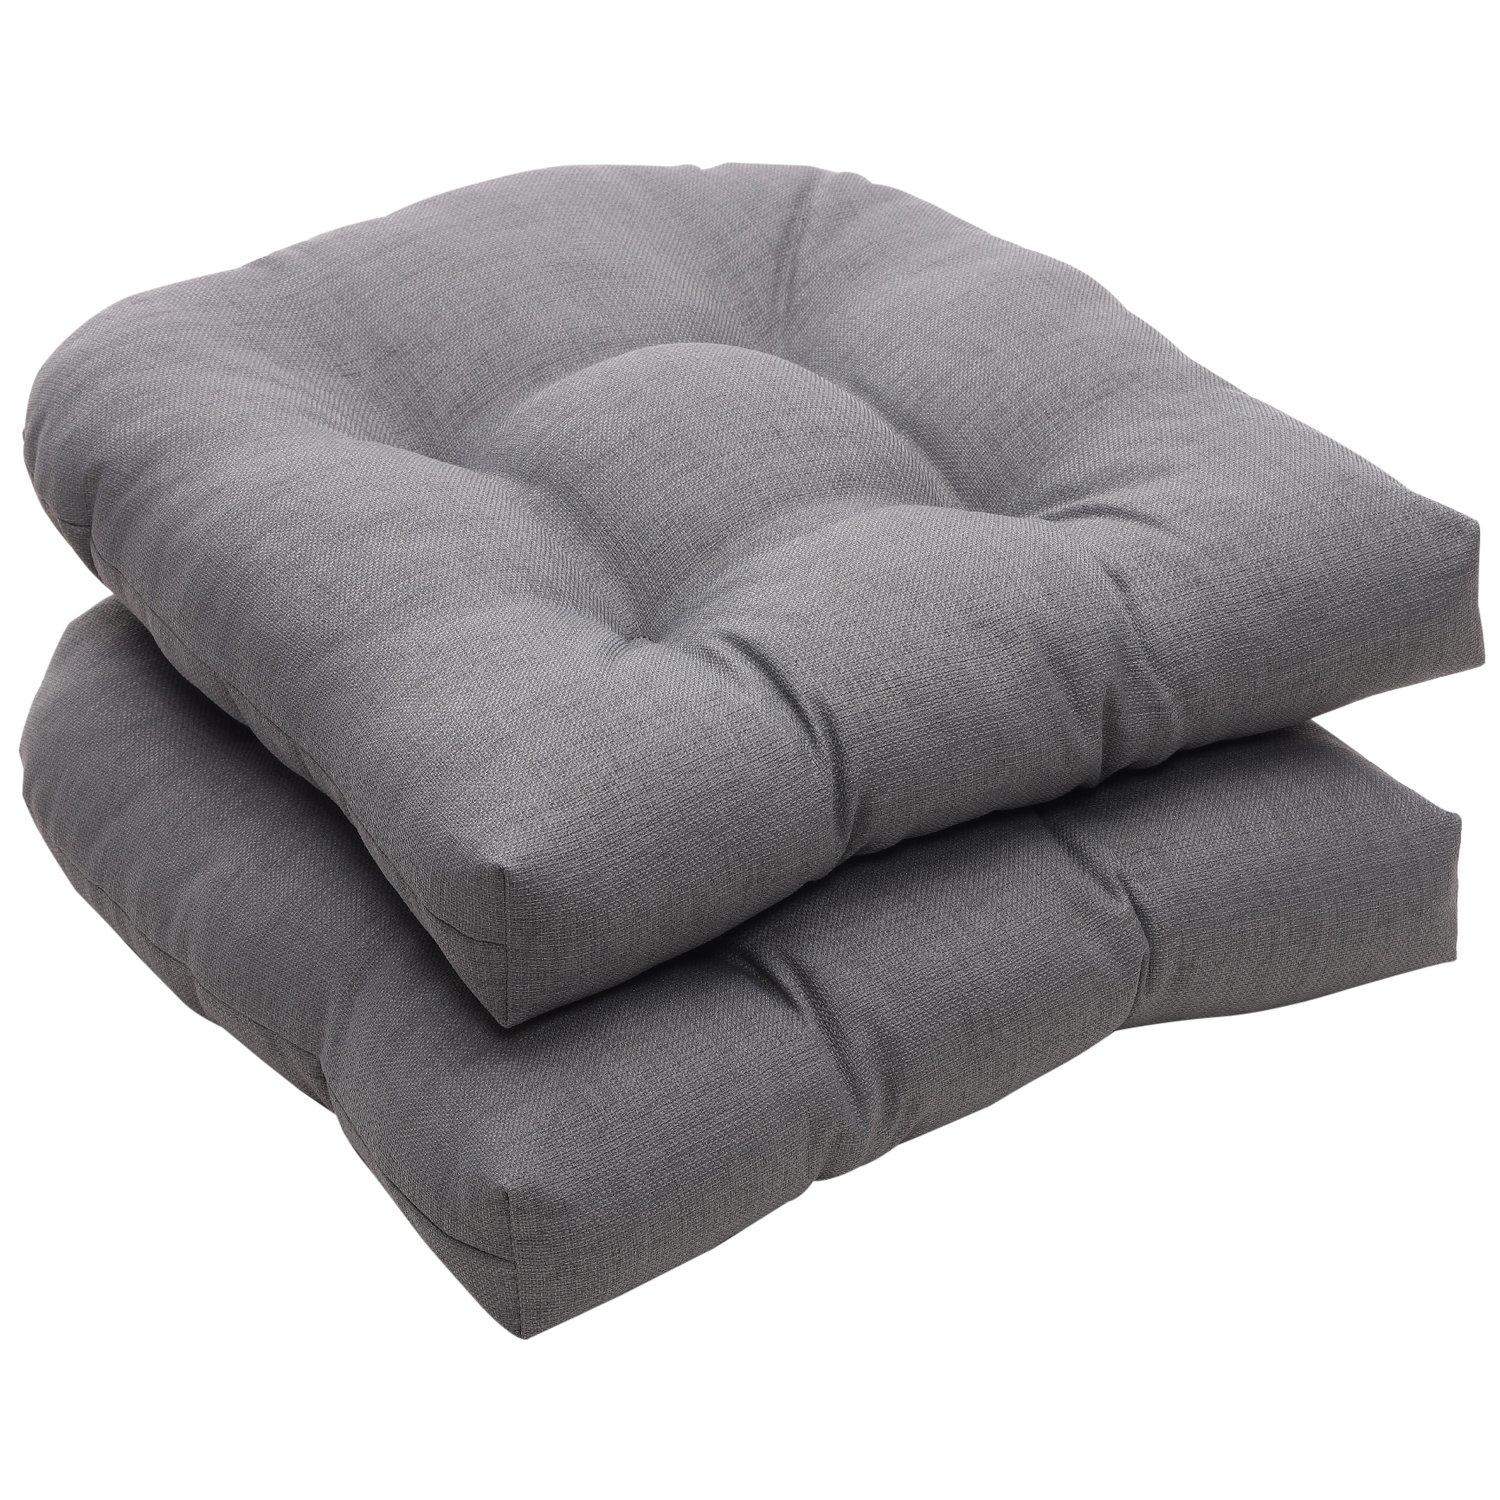 Pillow Perfect Indoor/Outdoor Gray Textured Solid